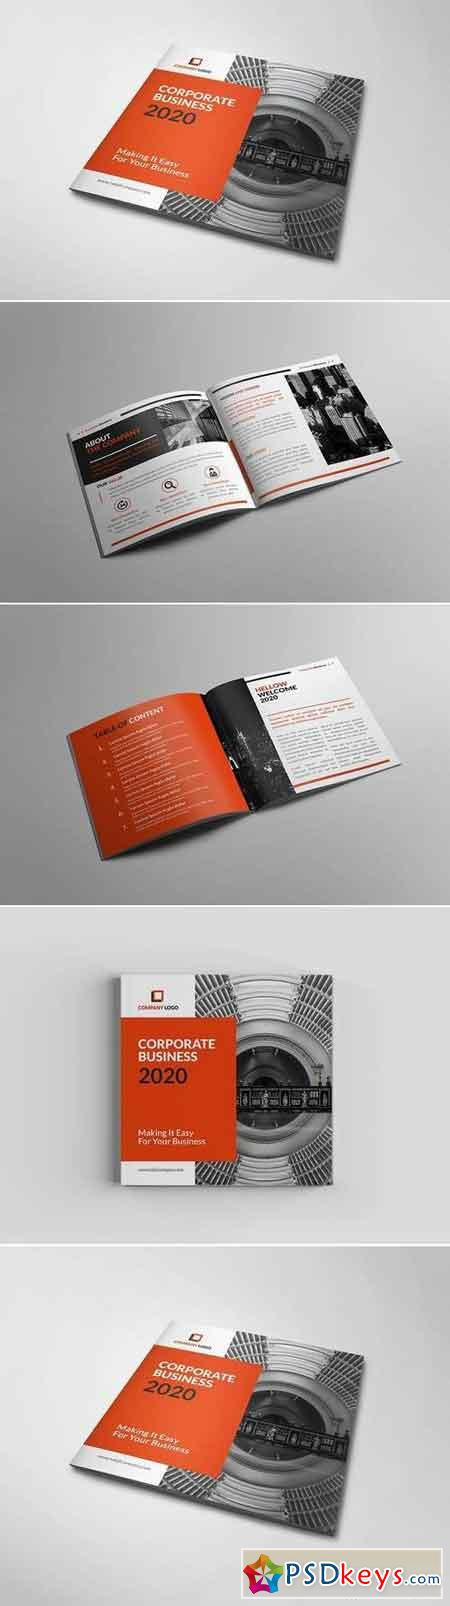 Pakumantan - A Square Corporate Brochure Template